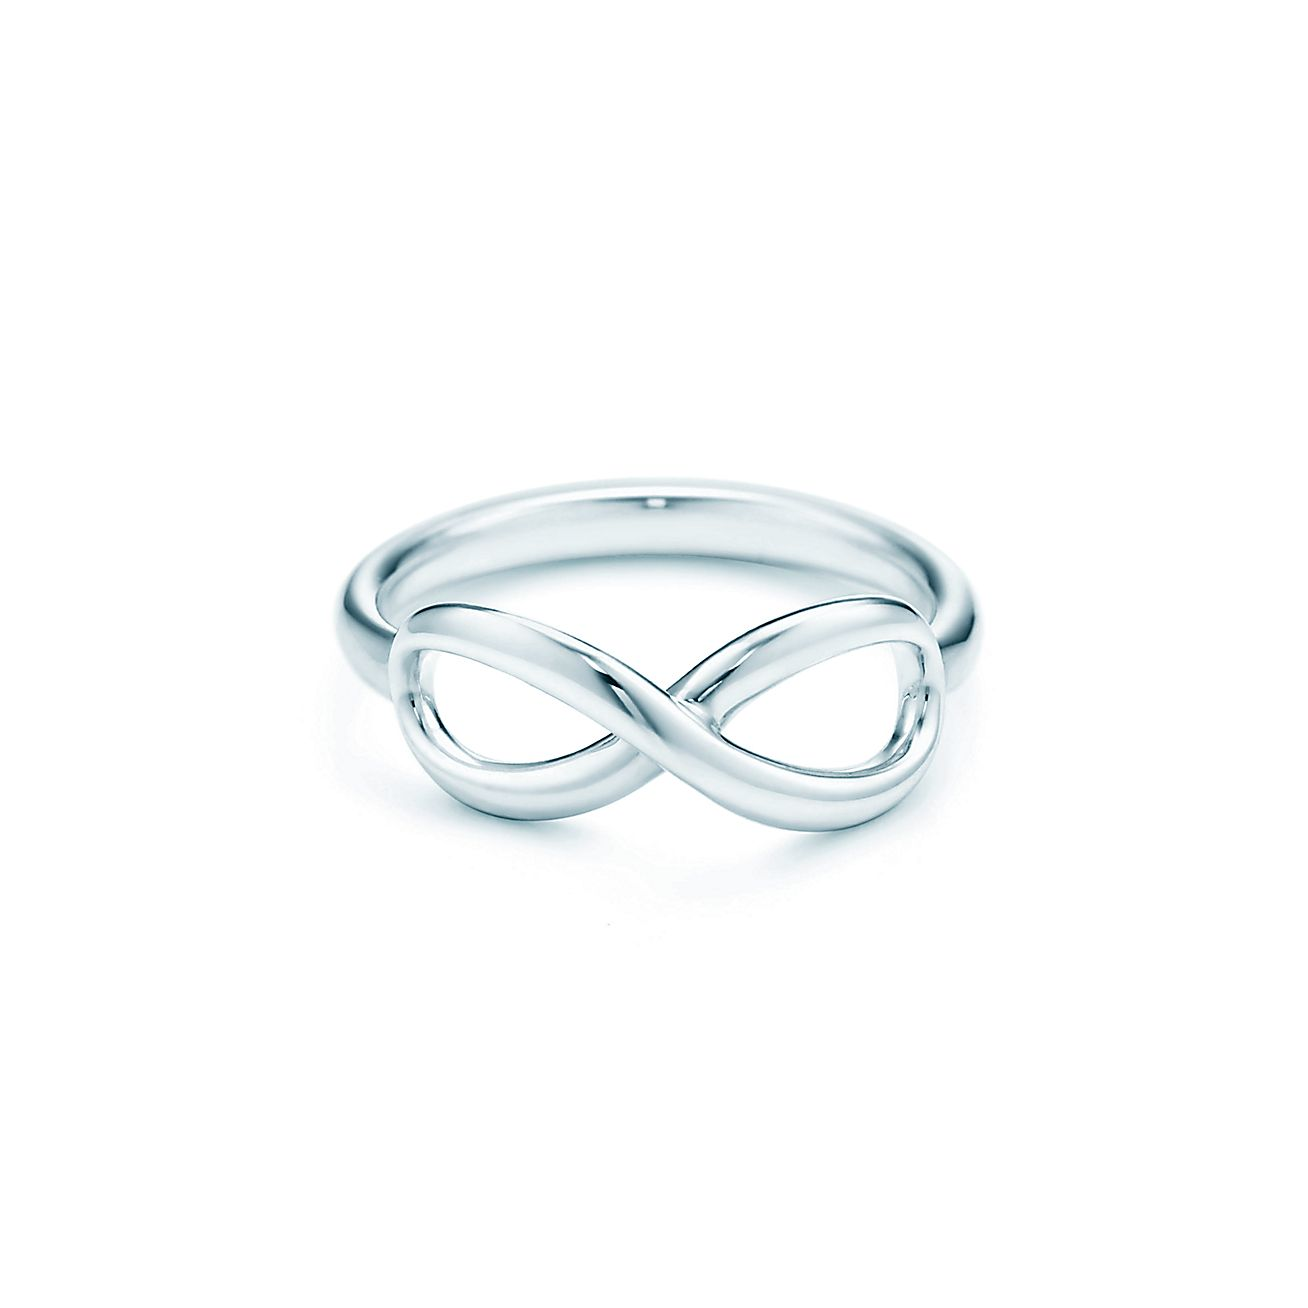 Tiffany Infinity ring in sterling silver. | Tiffany & Co.